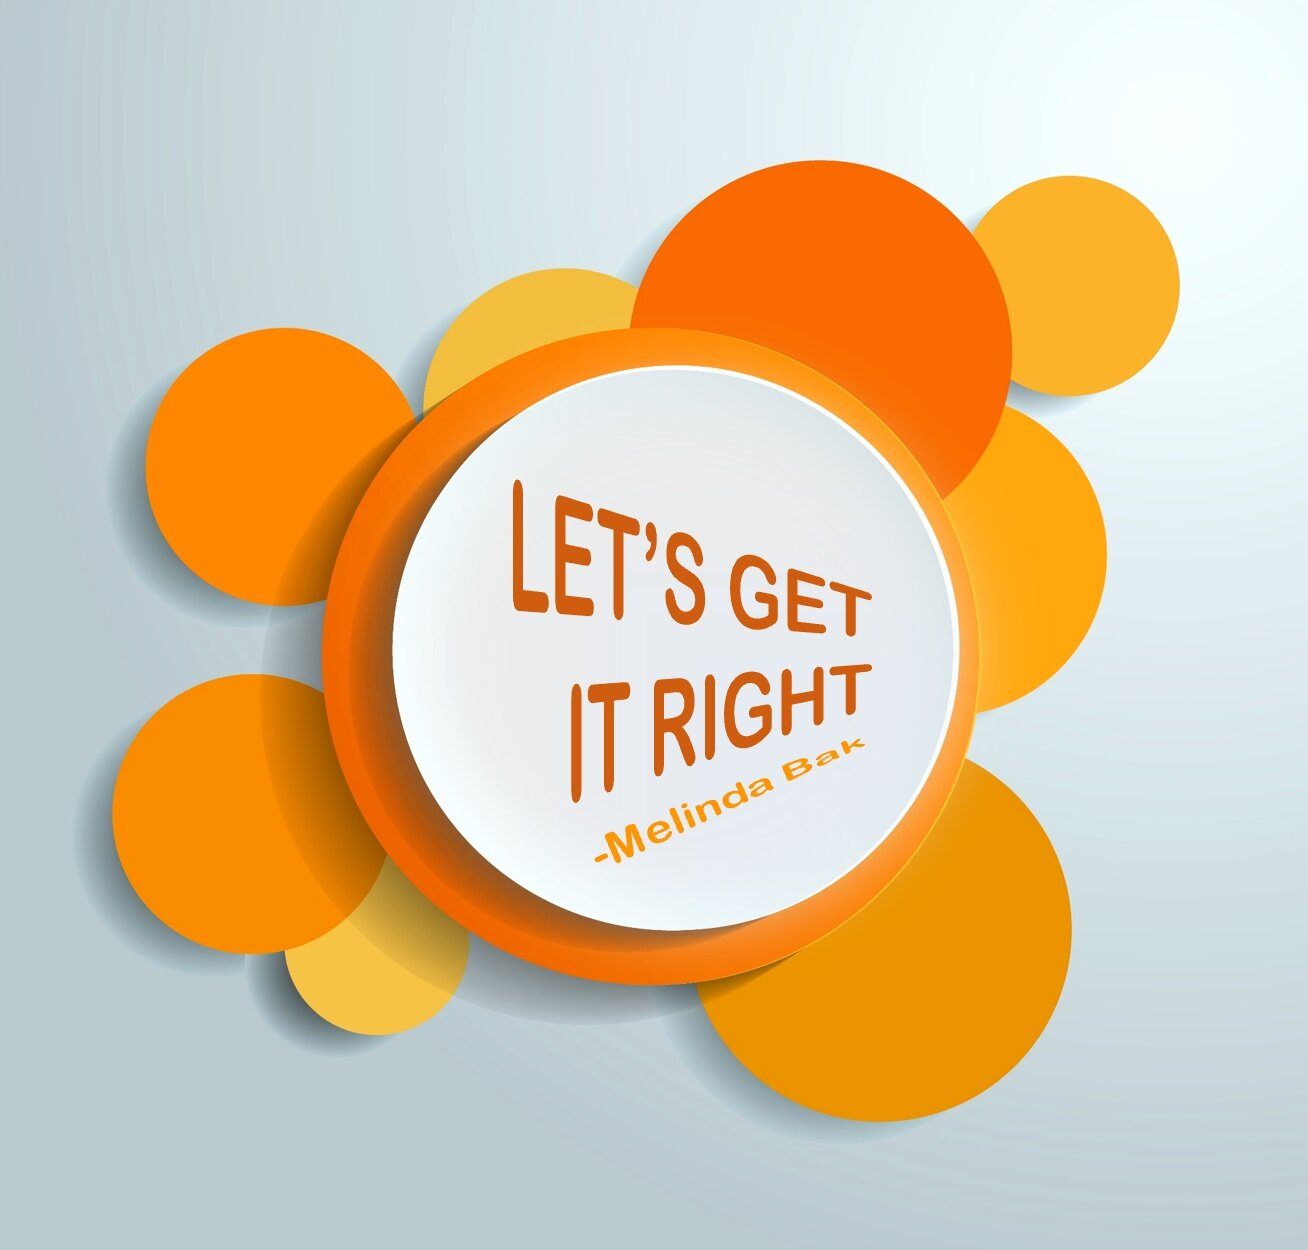 Let%27s+get+your+website+right+-+content%2C+design%2C+branding+aligned+with+your+goals